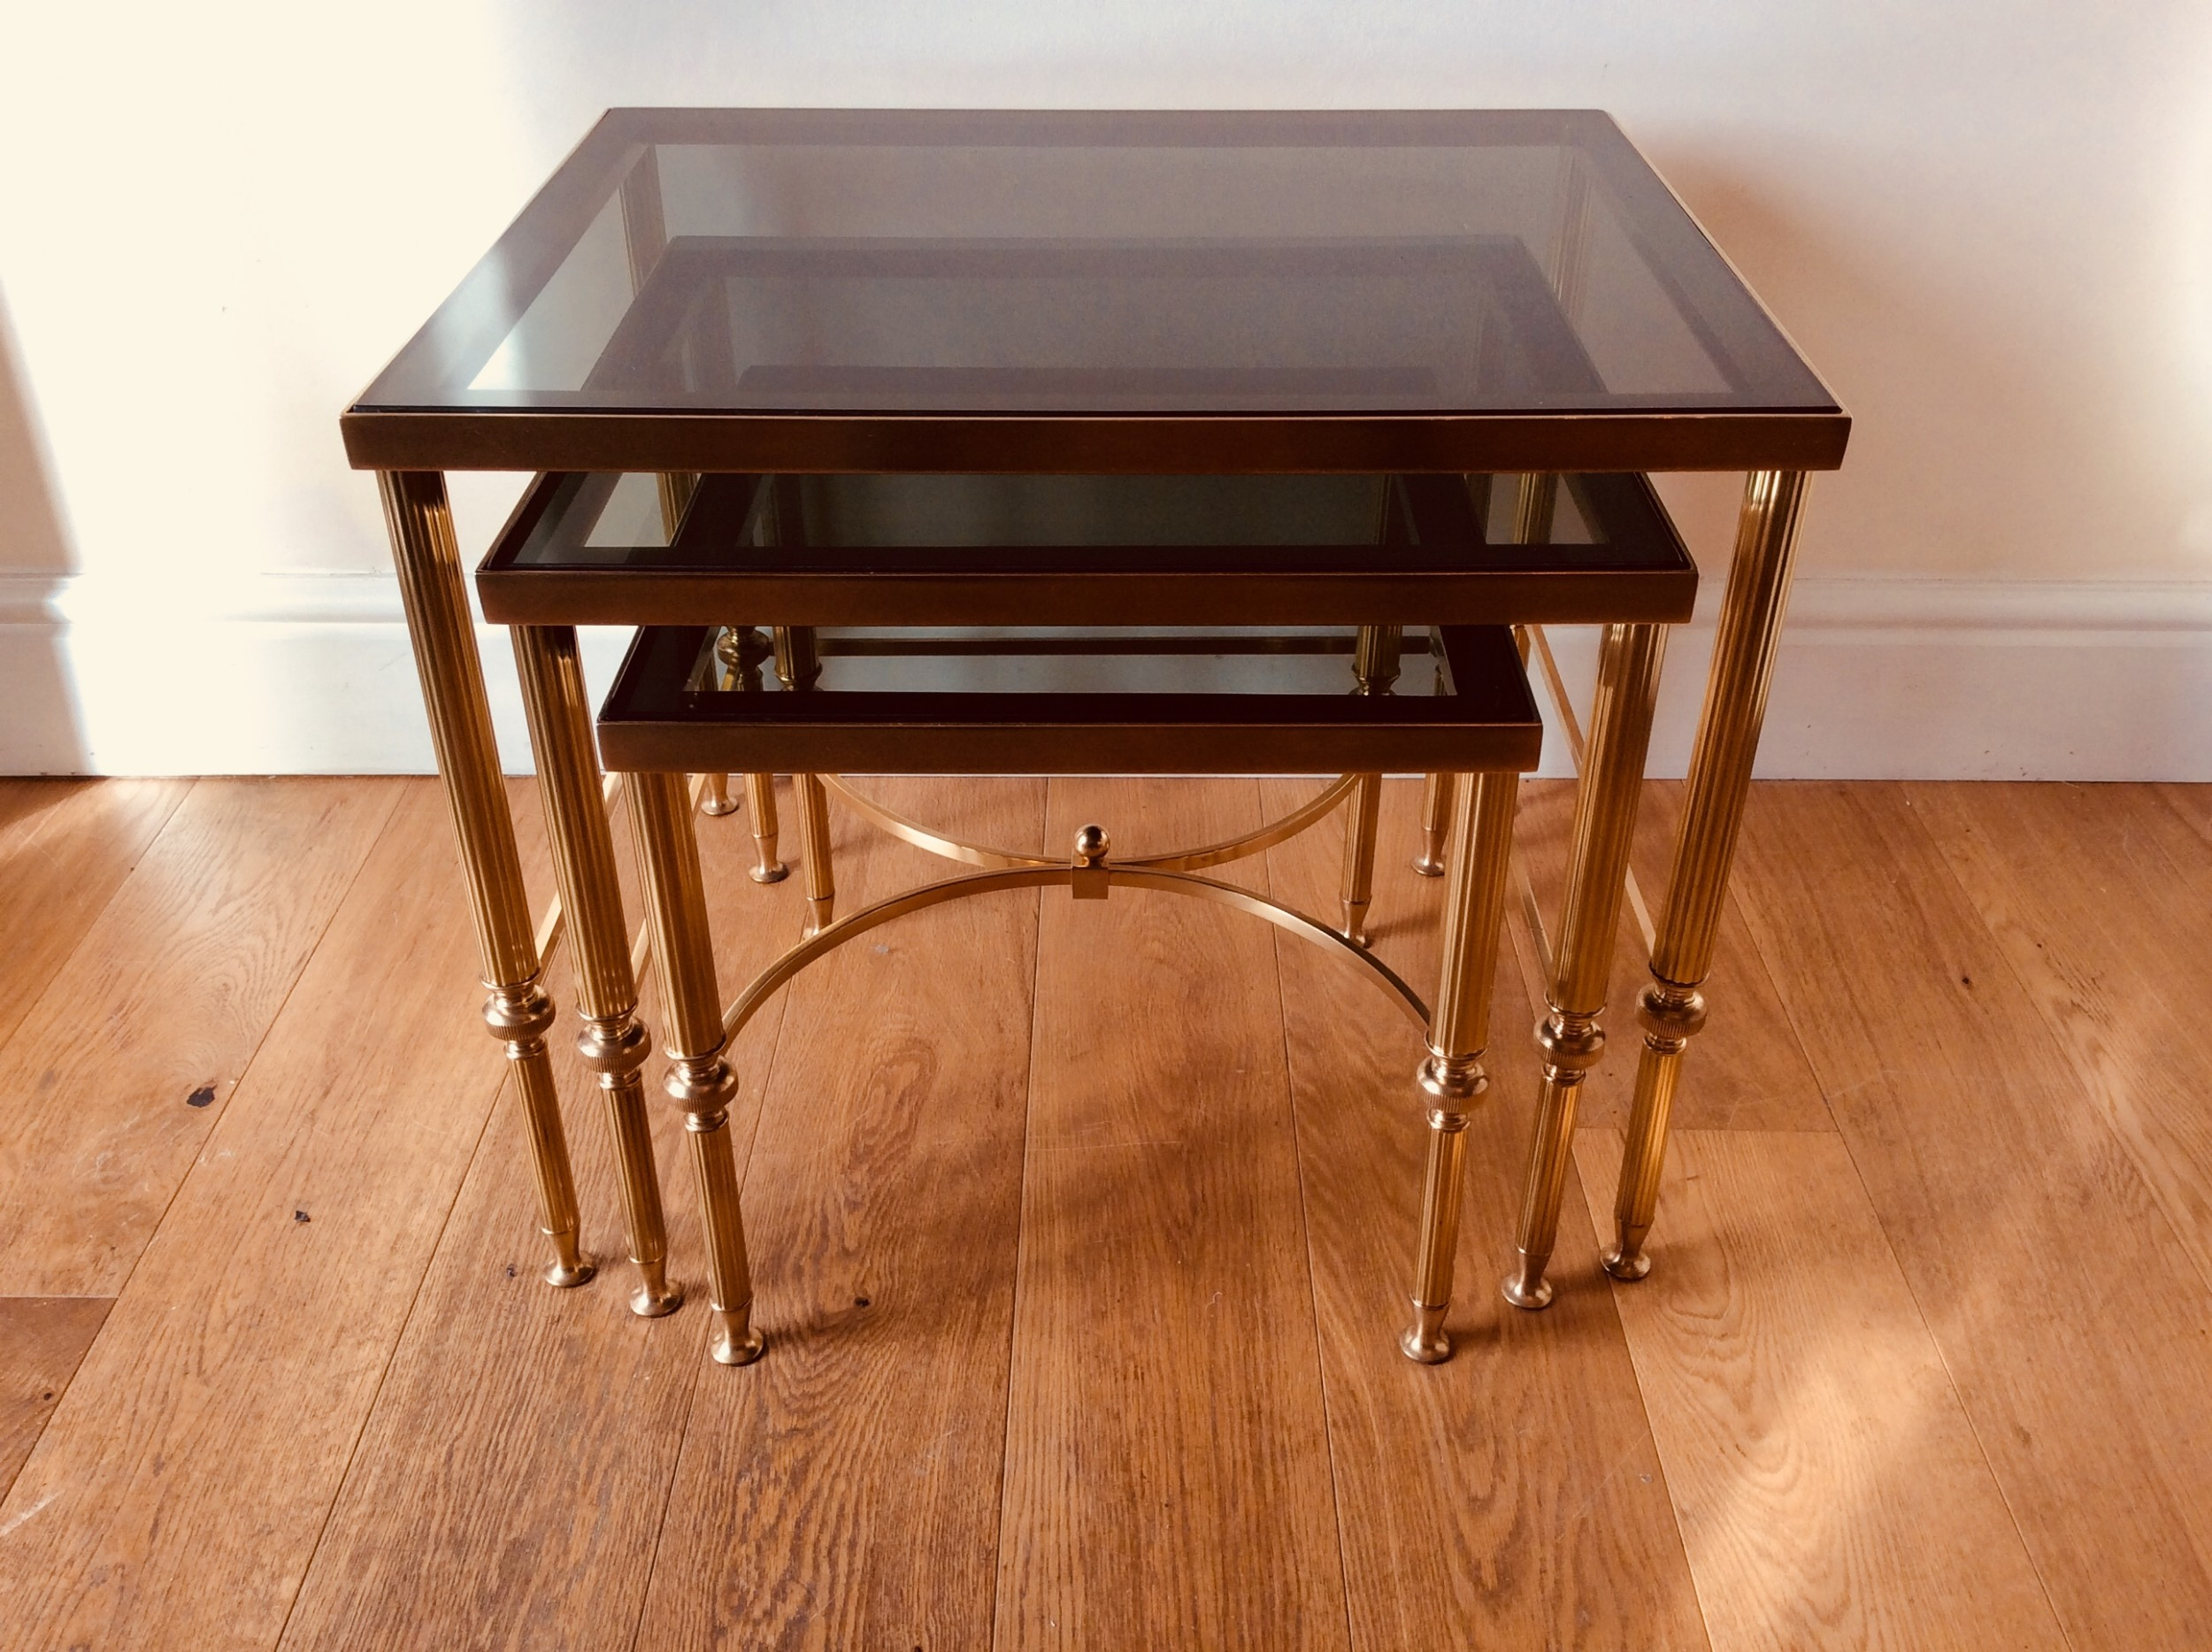 tables french brass and glass set of 3 tables finest qualityprobably maison jansen paris c1920